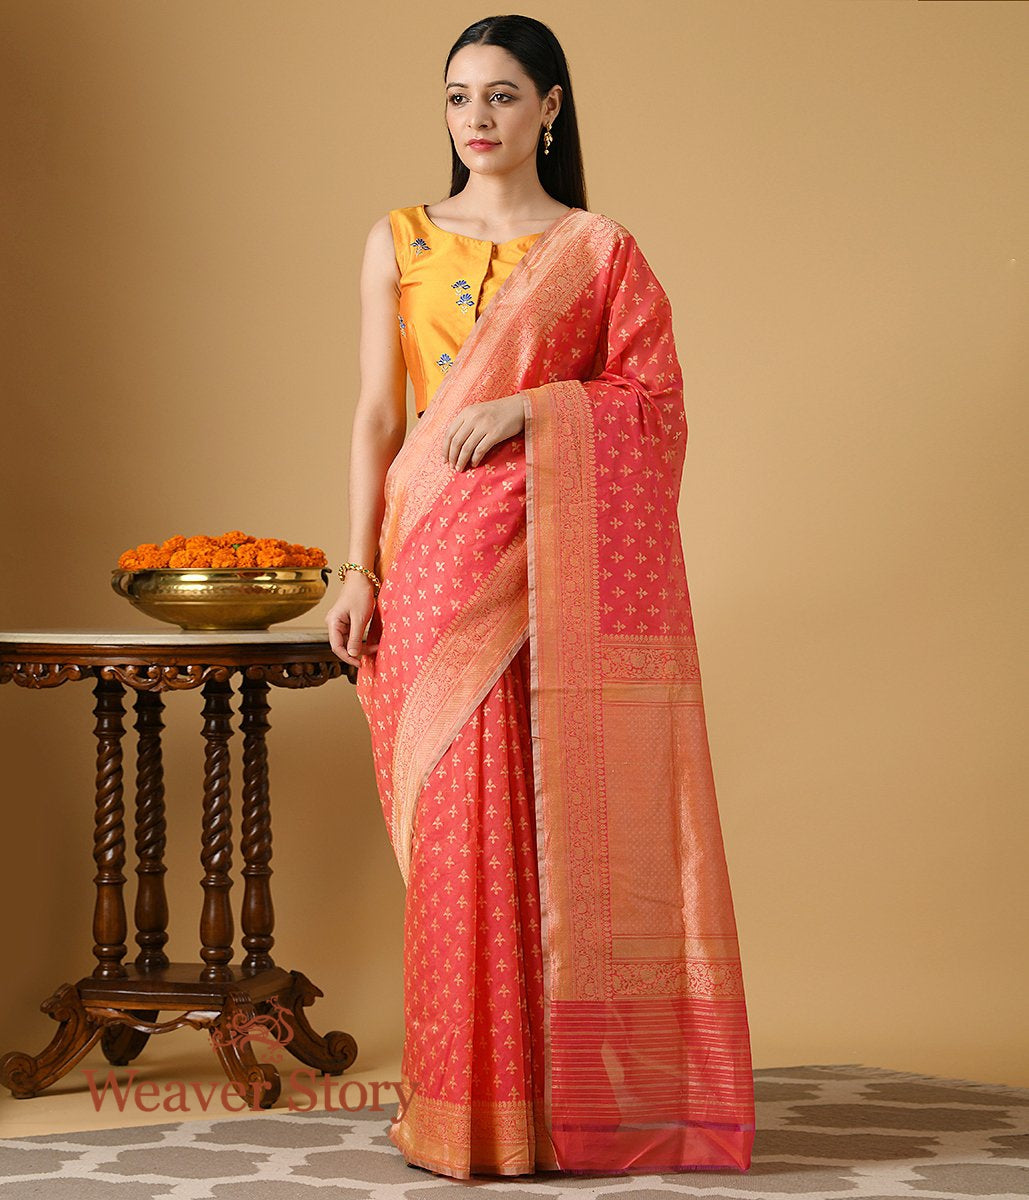 Handwoven Coral Red Cotton Banarasi with Thread Booti